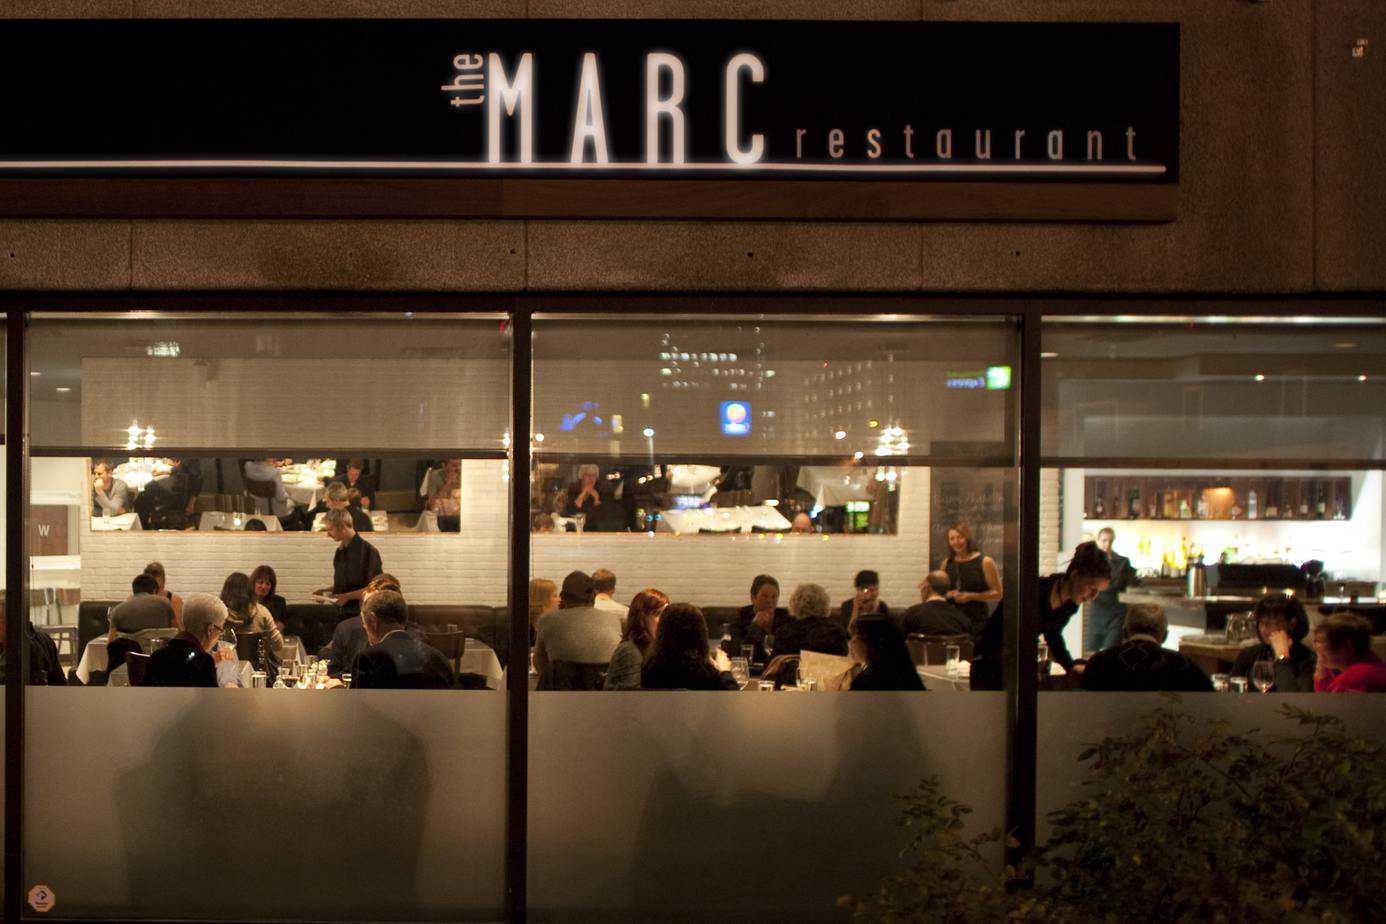 The Marc Restaurant